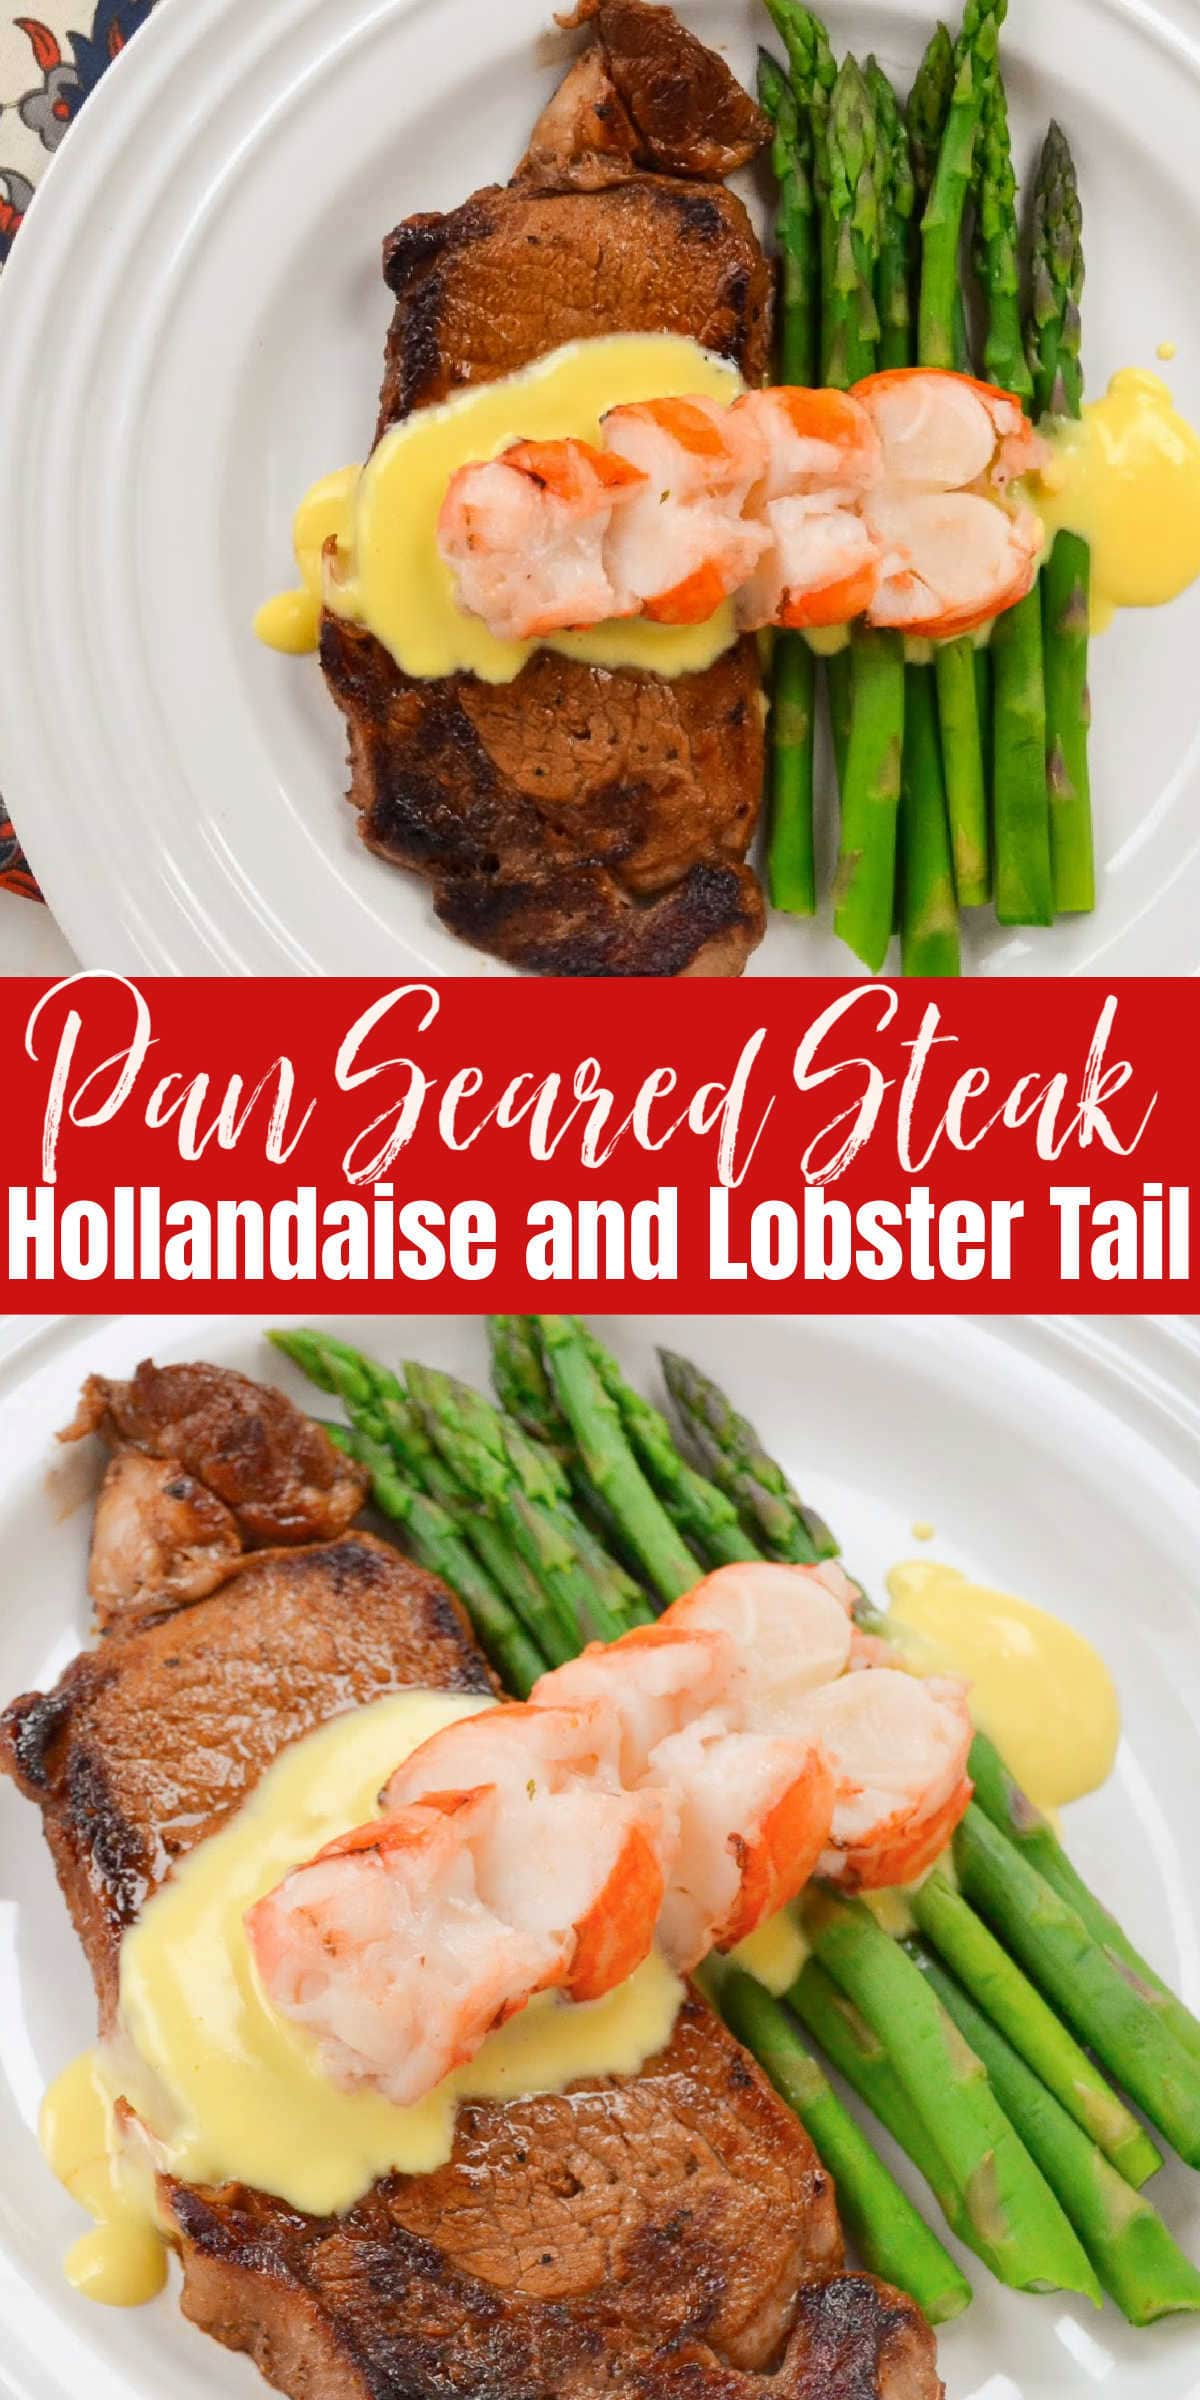 Pan Seared Steak with Hollandaise Sauce and Lobster Tail